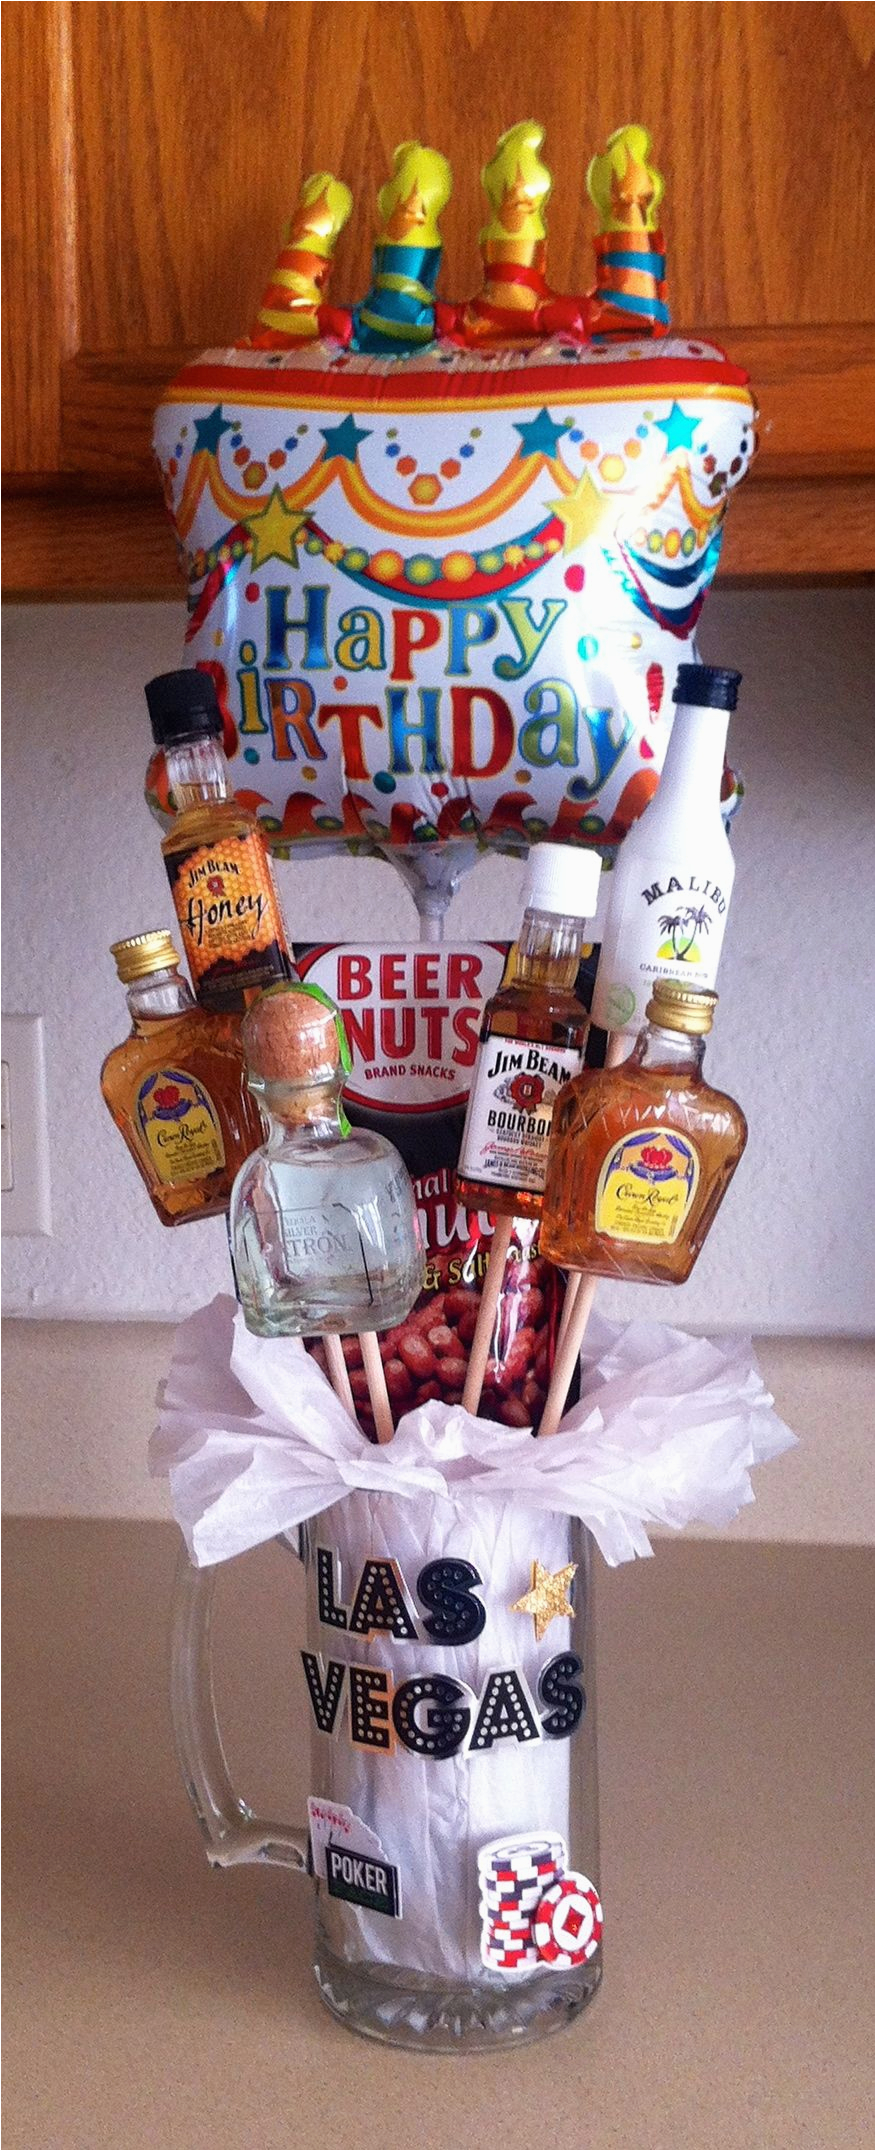 Birthday Gifts for Him In Store Alcohol Bouquet that I Made for My Husbands Cousin for His